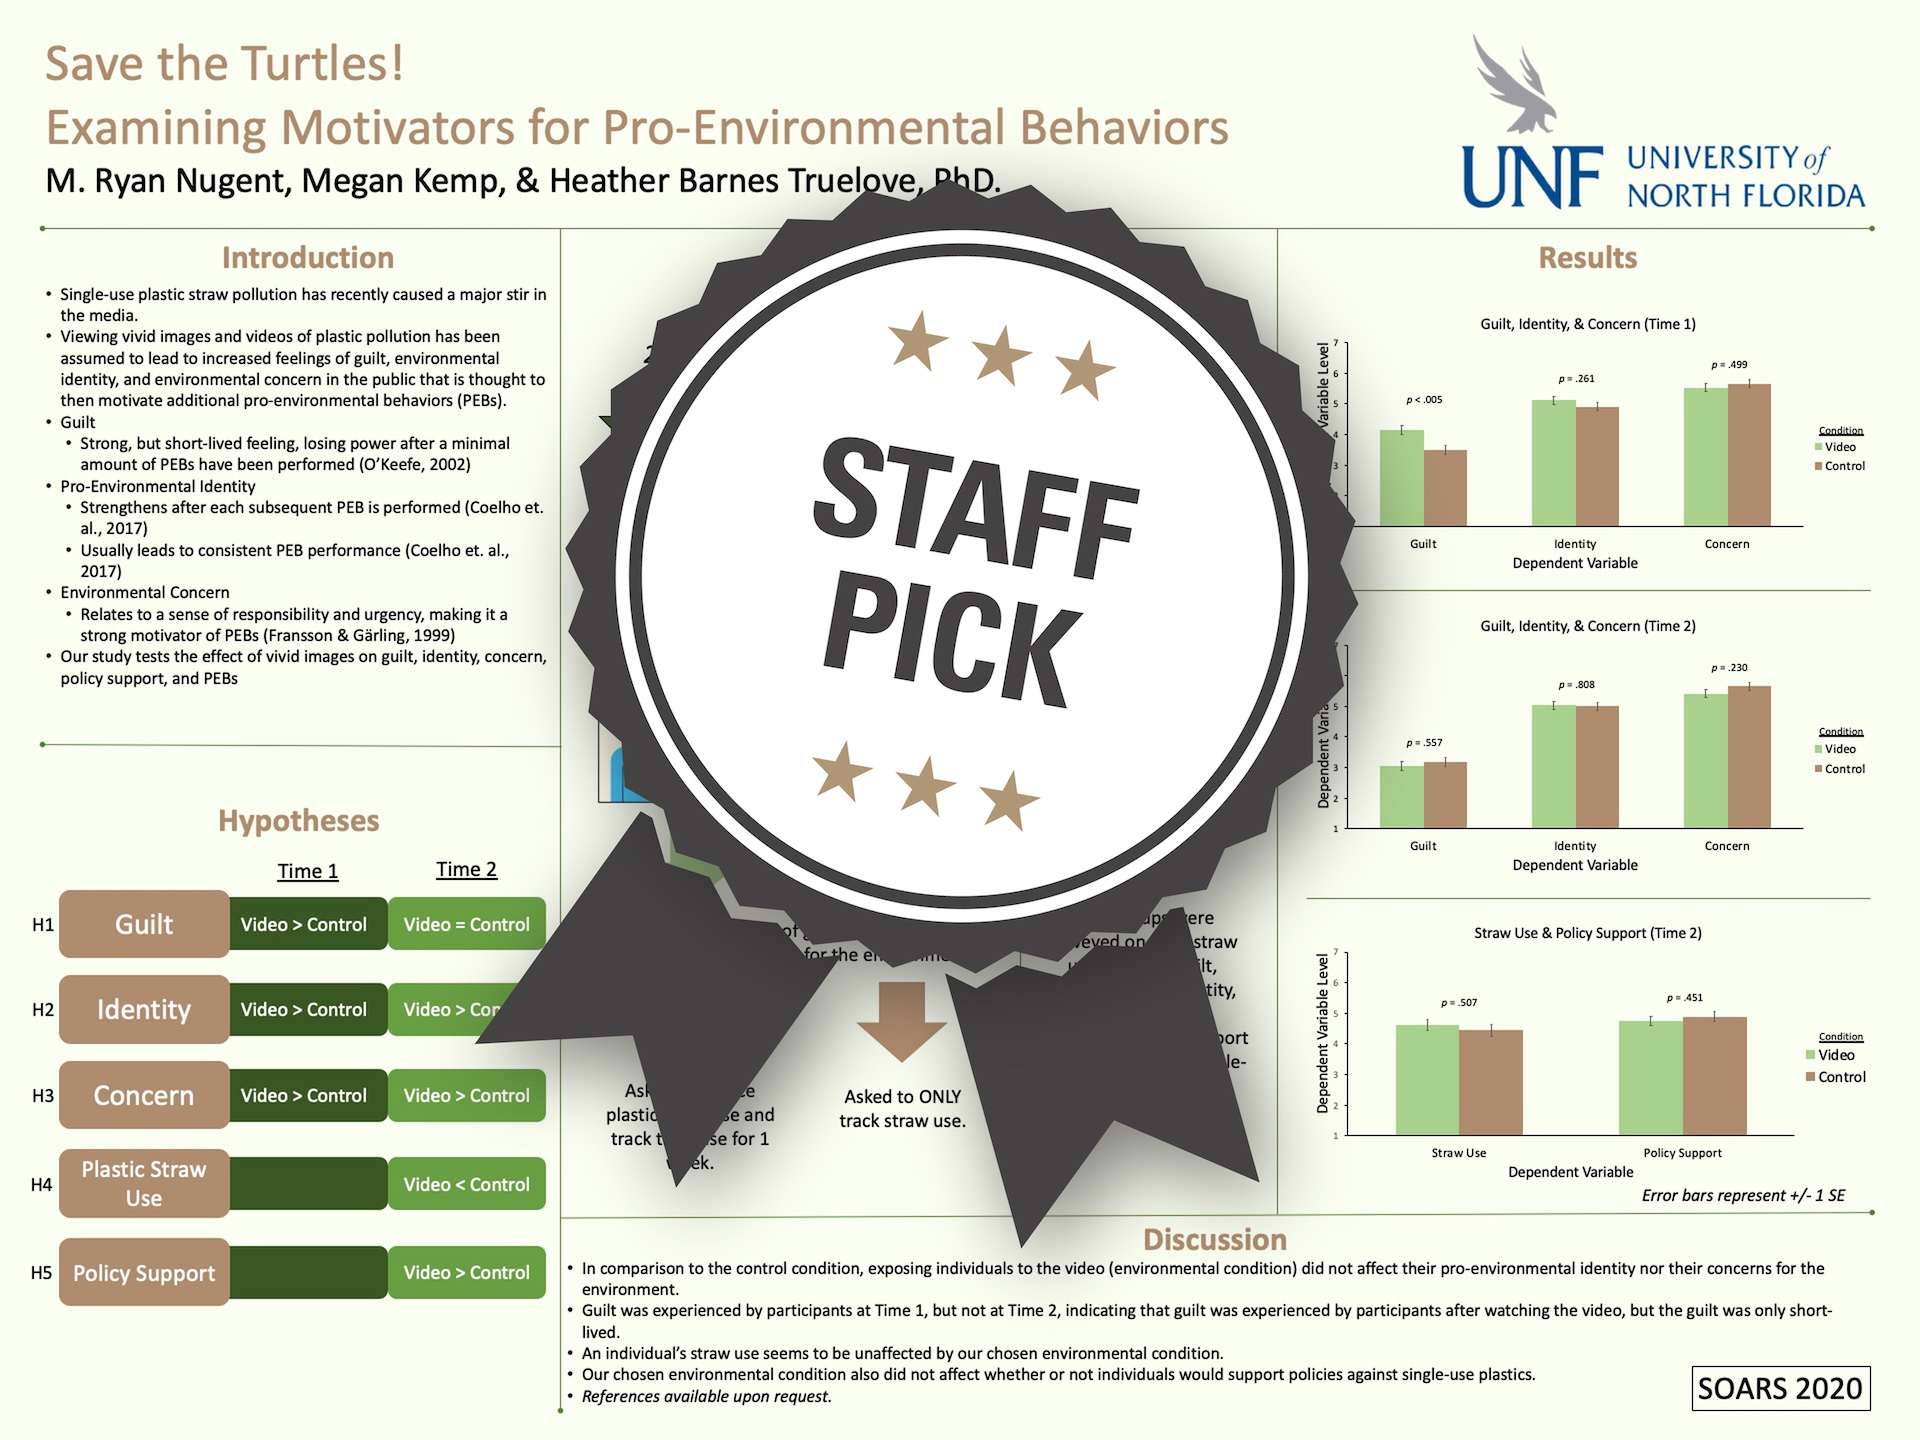 Save the Turtles! Examining Motivators for Pro-Environmental Behaviors Staff Pick poster